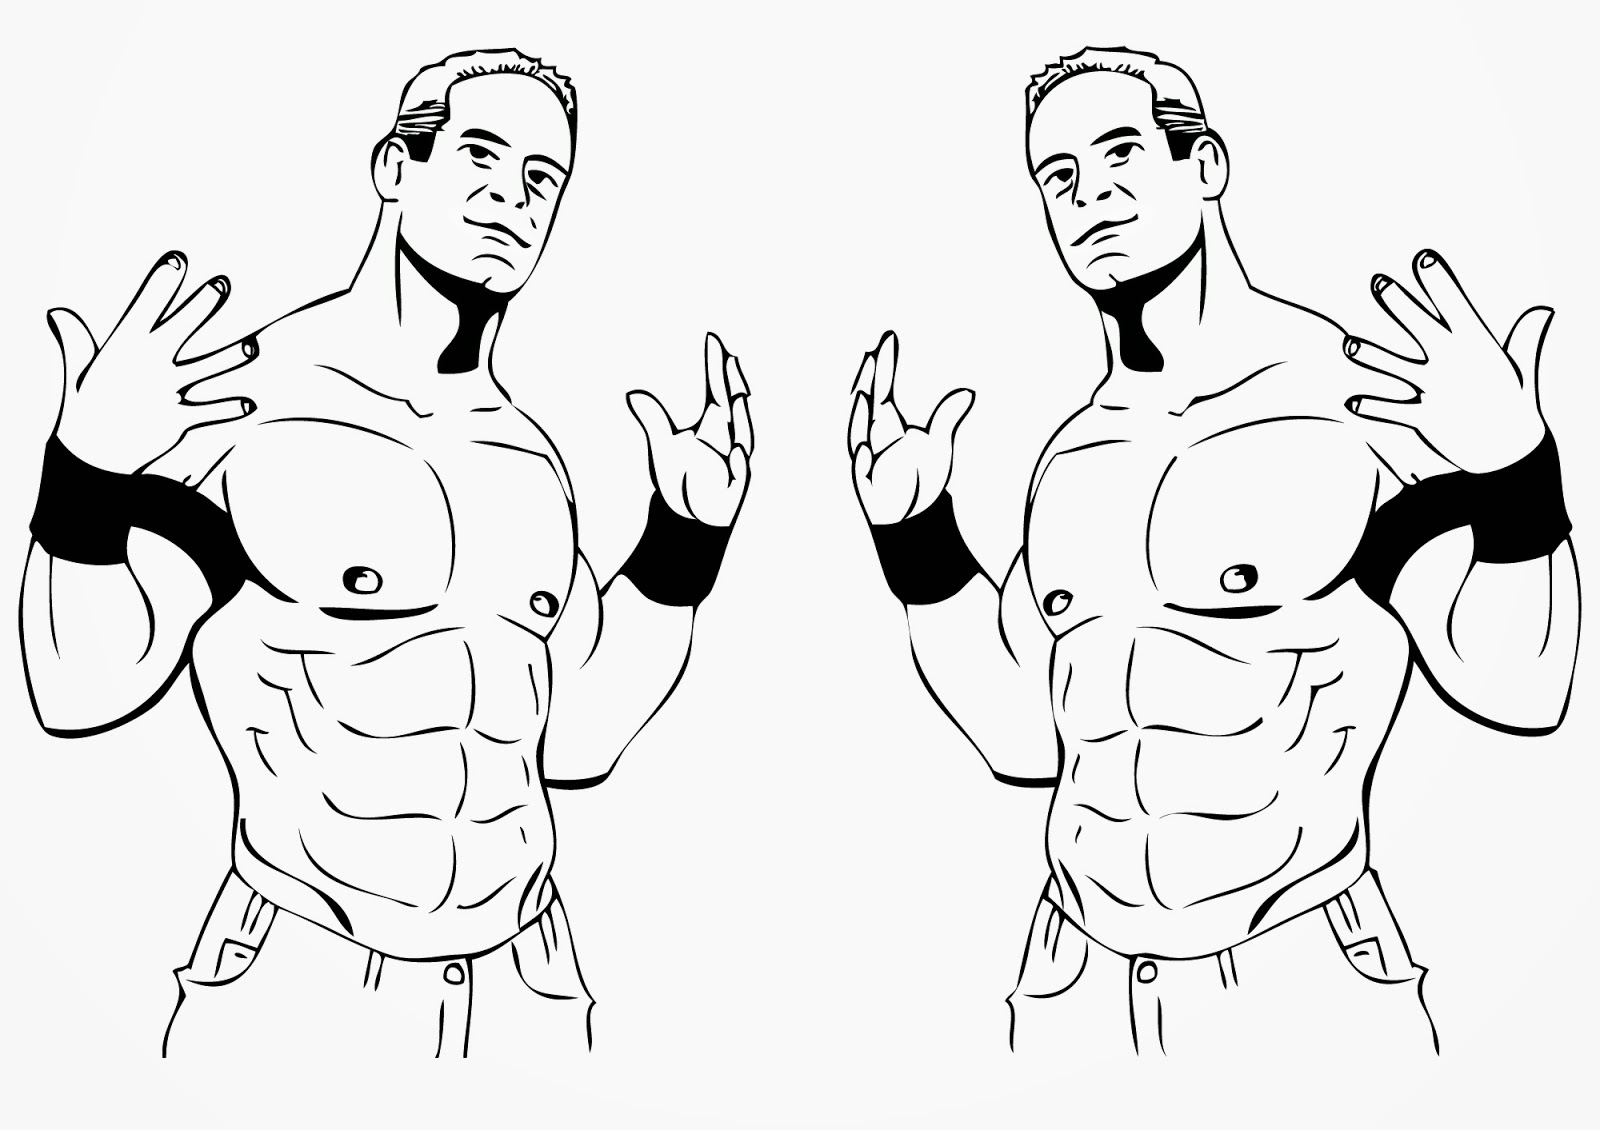 20+ Free Printable WWE Coloring Pages - EverFreeColoring.com | 1130x1600